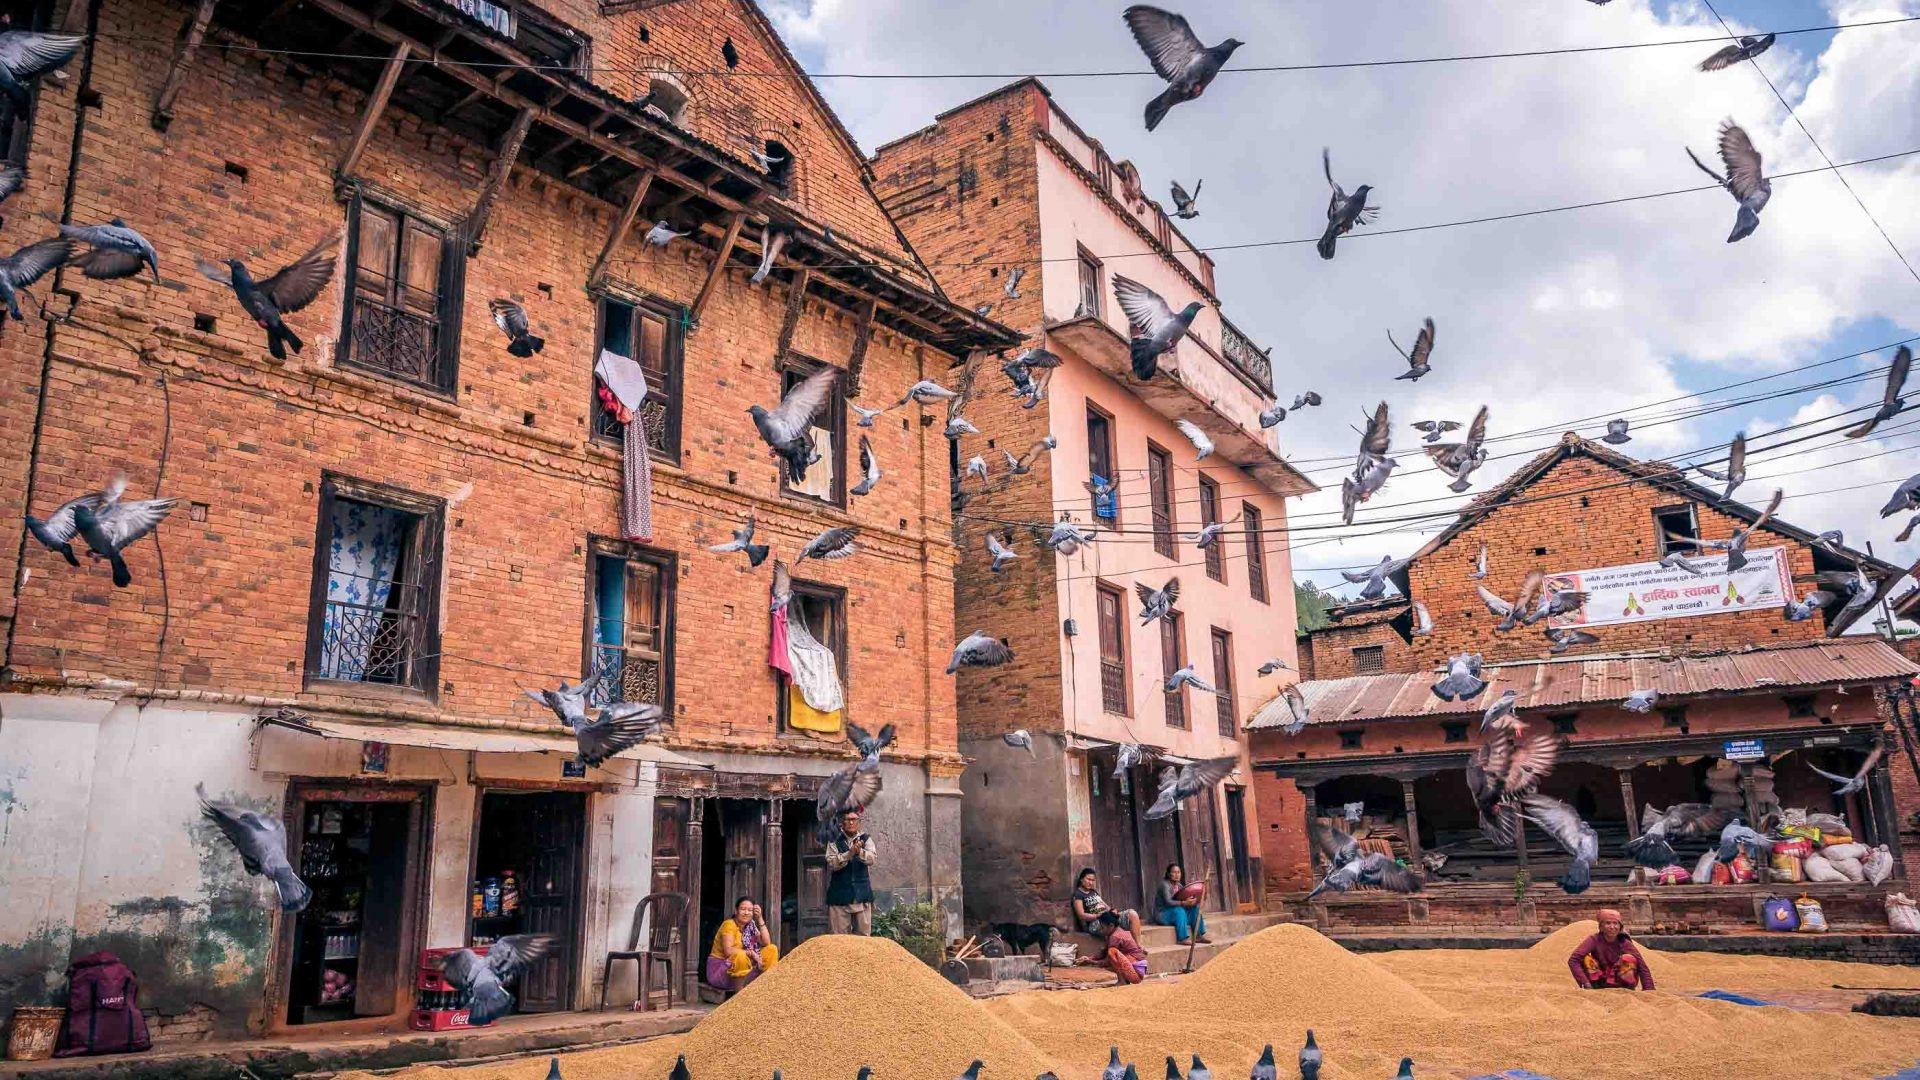 Birds fly in Panauti, Nepal.